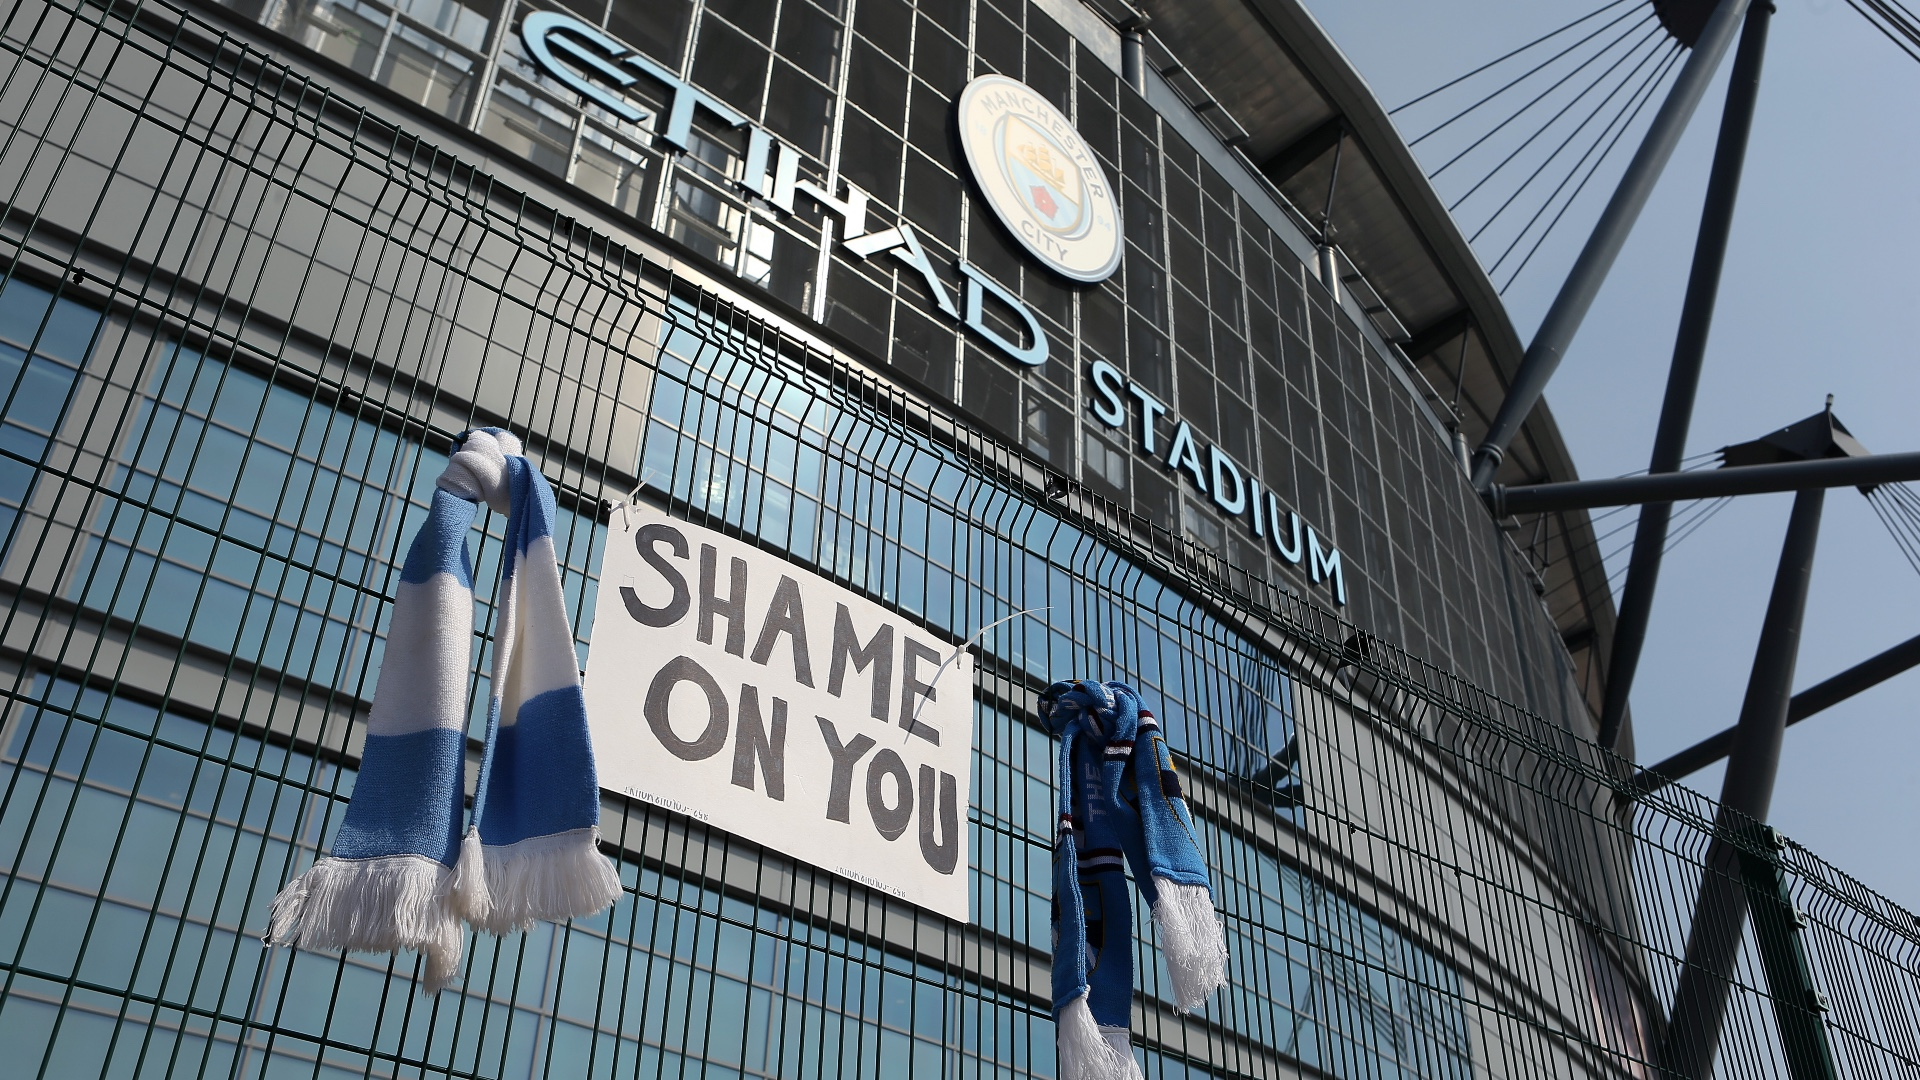 In Manchester City, Chelsea defections mean that the Super League revolution will not last another day